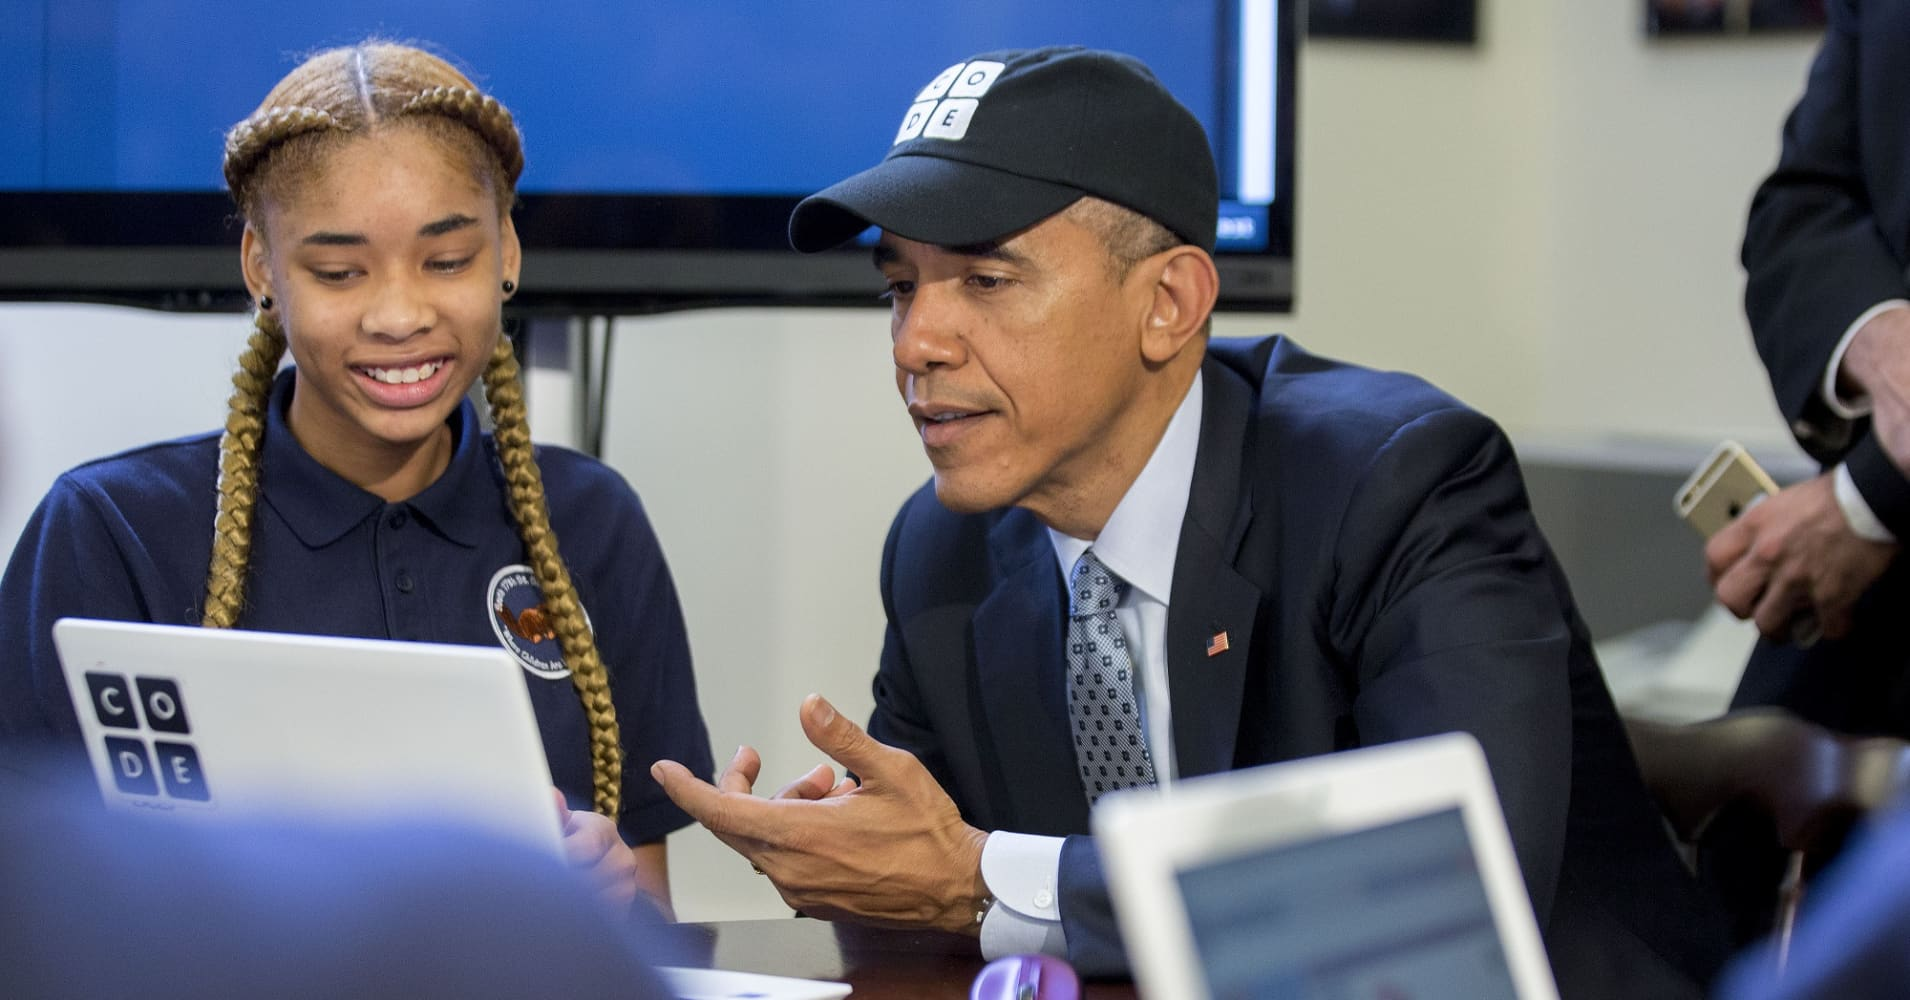 Here's how Barack Obama just surprised hundreds of kids who are learning to code